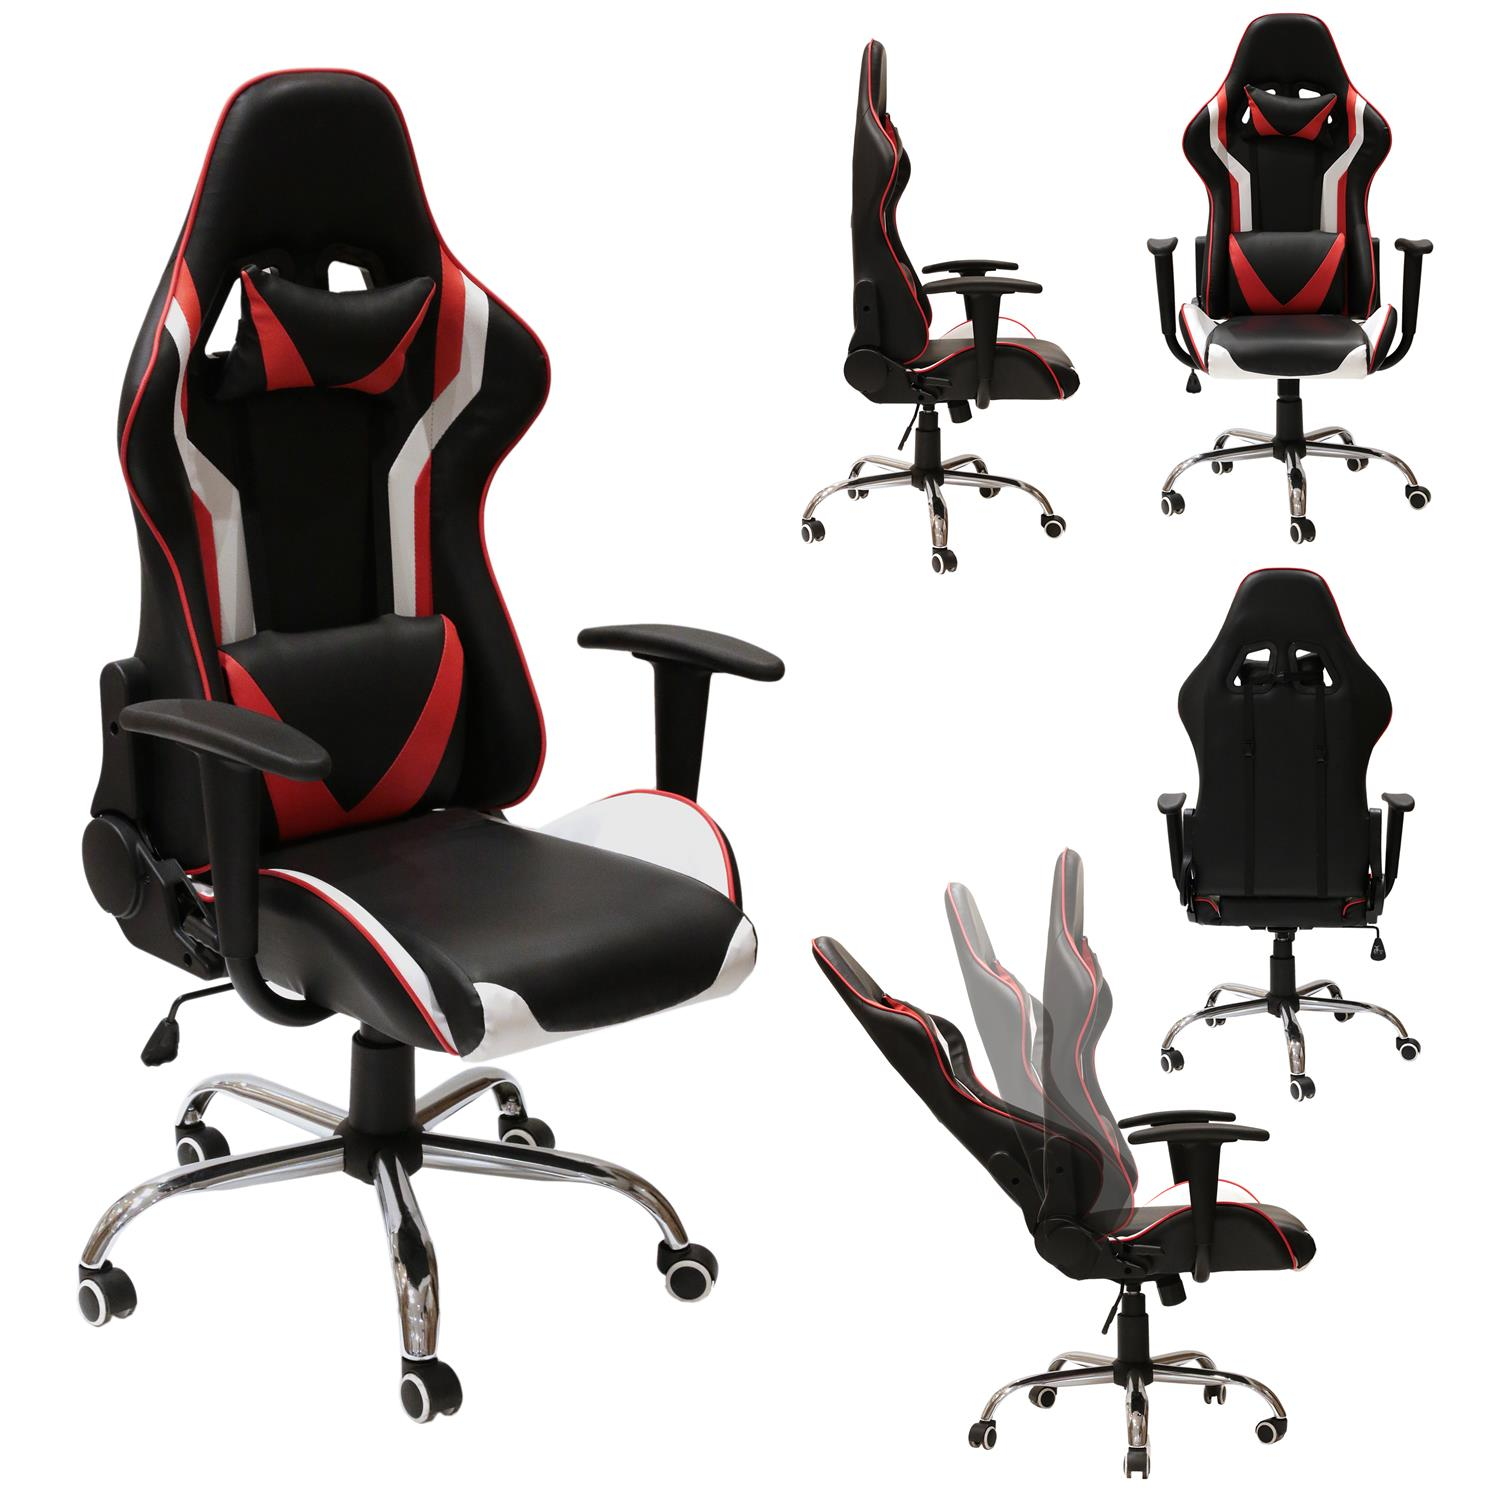 CHAISE GAMER LUXE Noir/Rouge